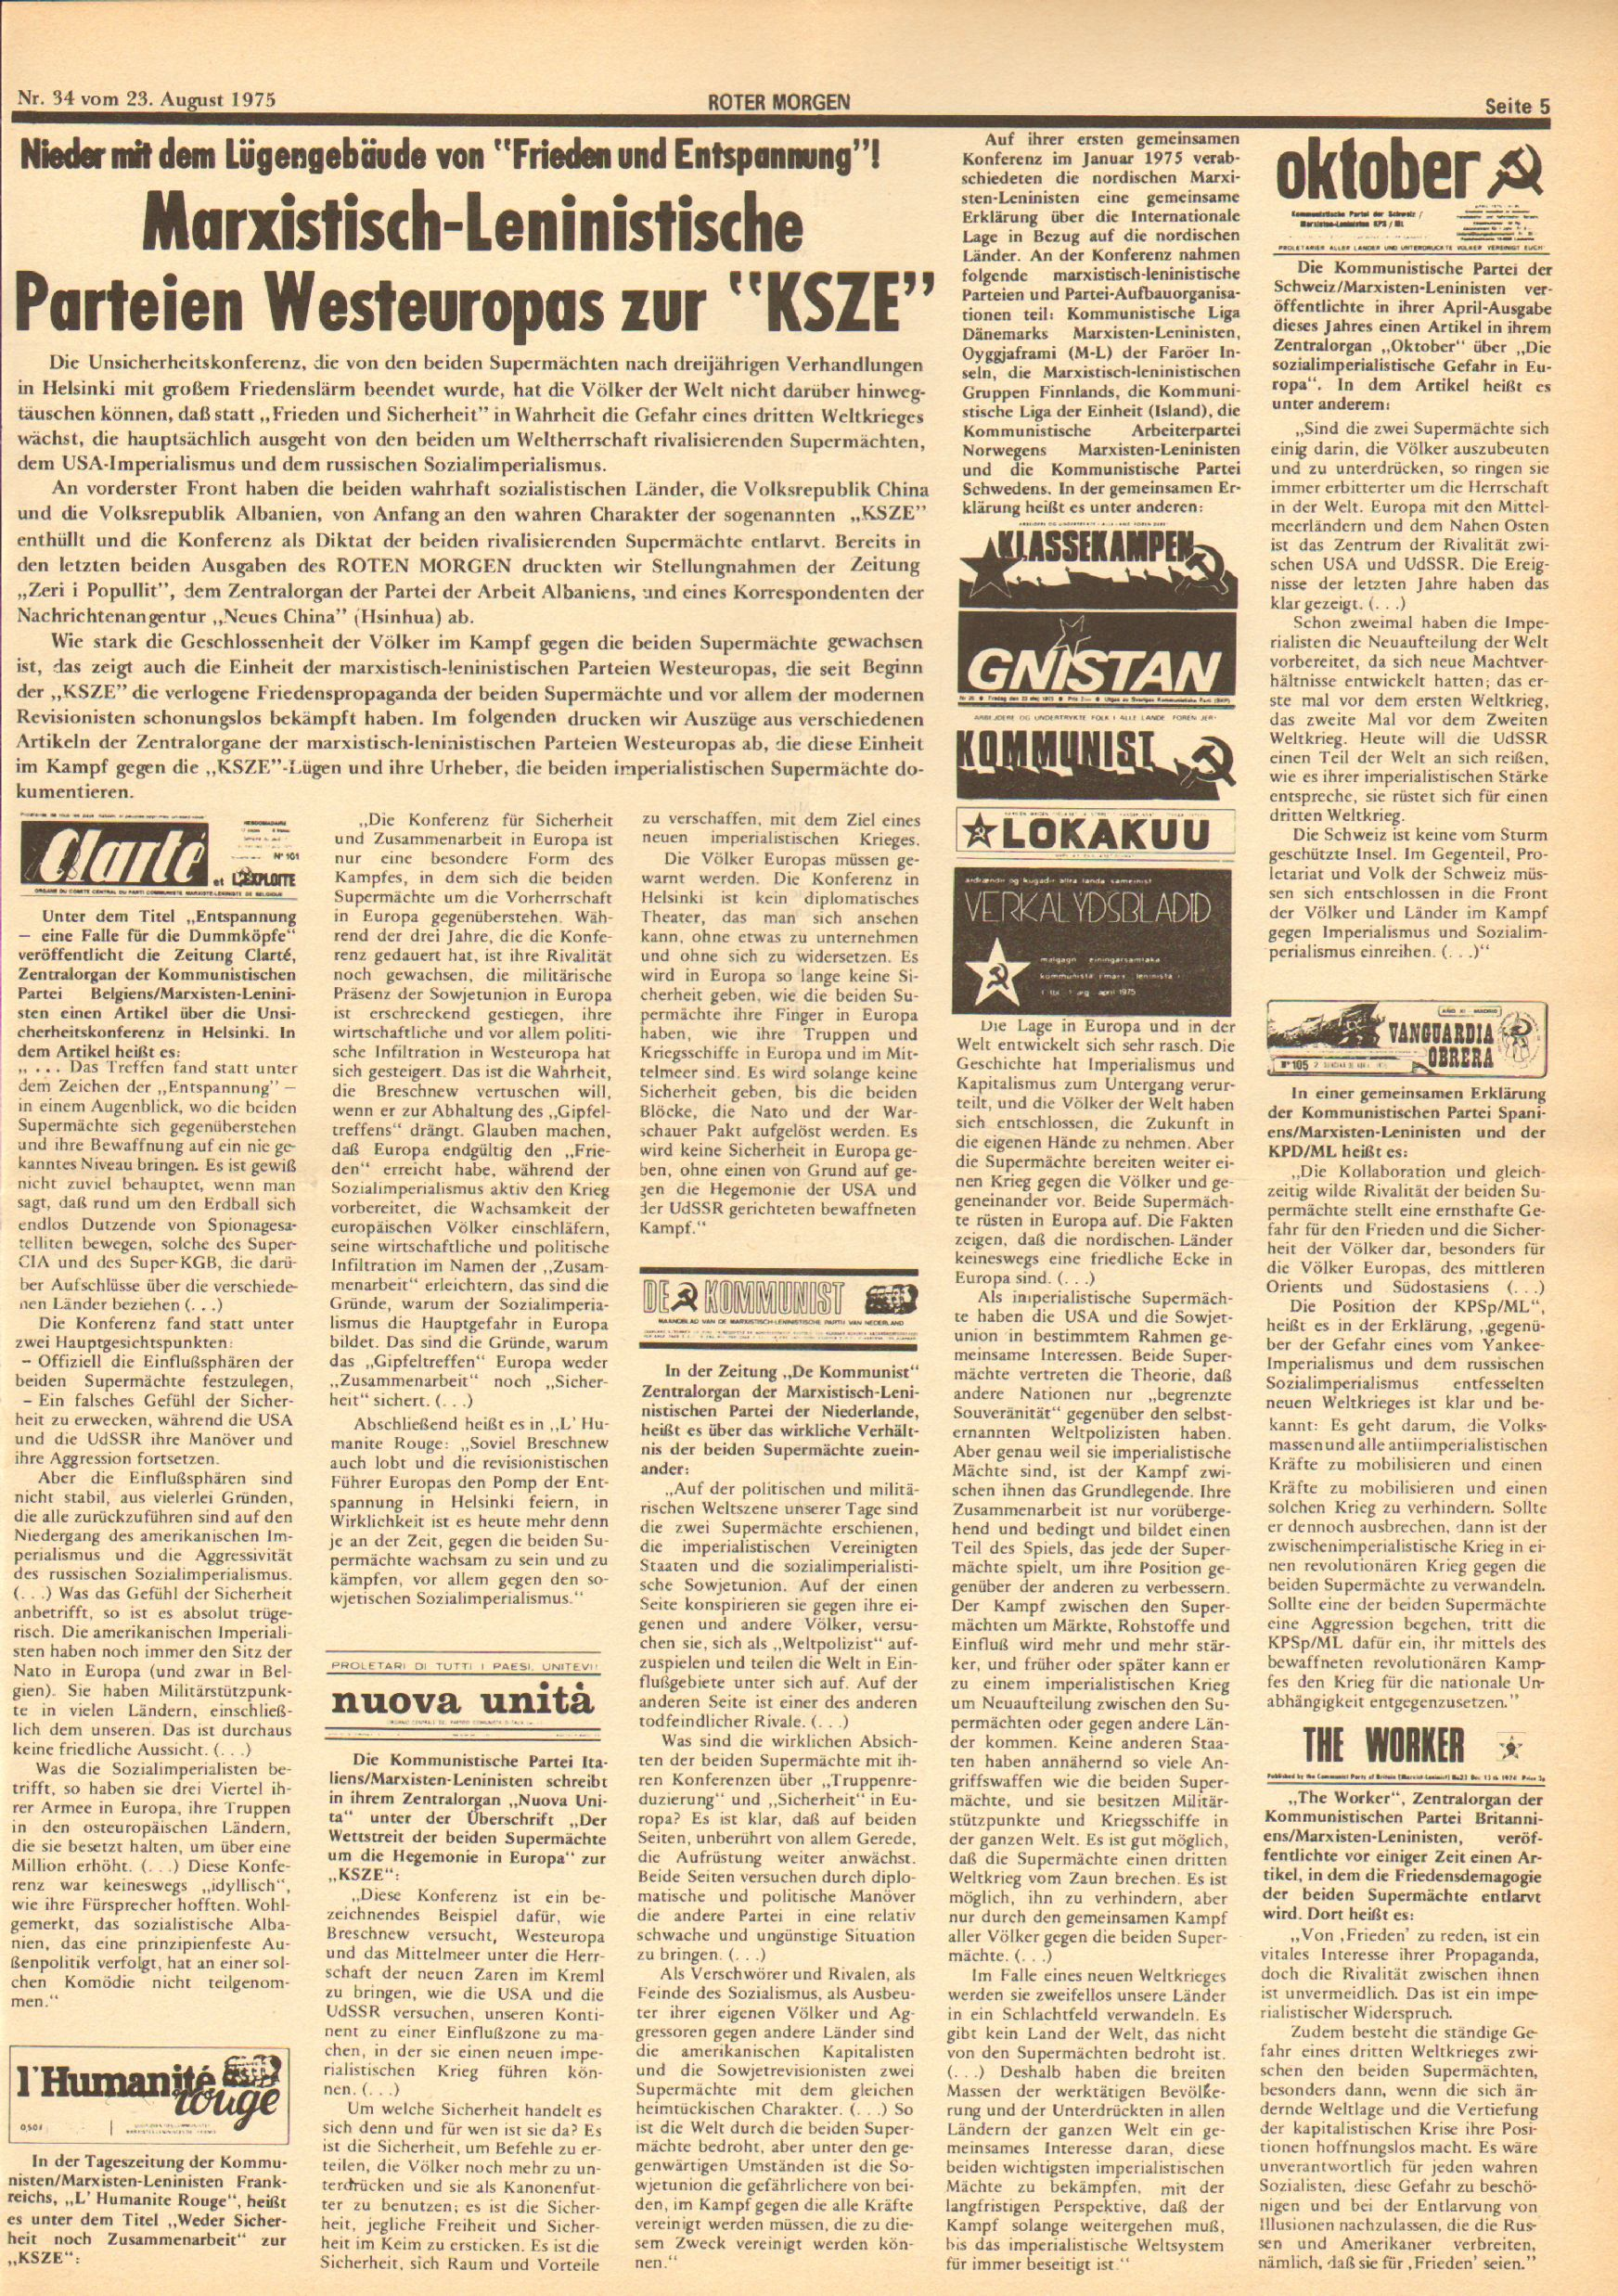 Roter Morgen, 9. Jg., 23. August 1975, Nr. 34, Seite 5